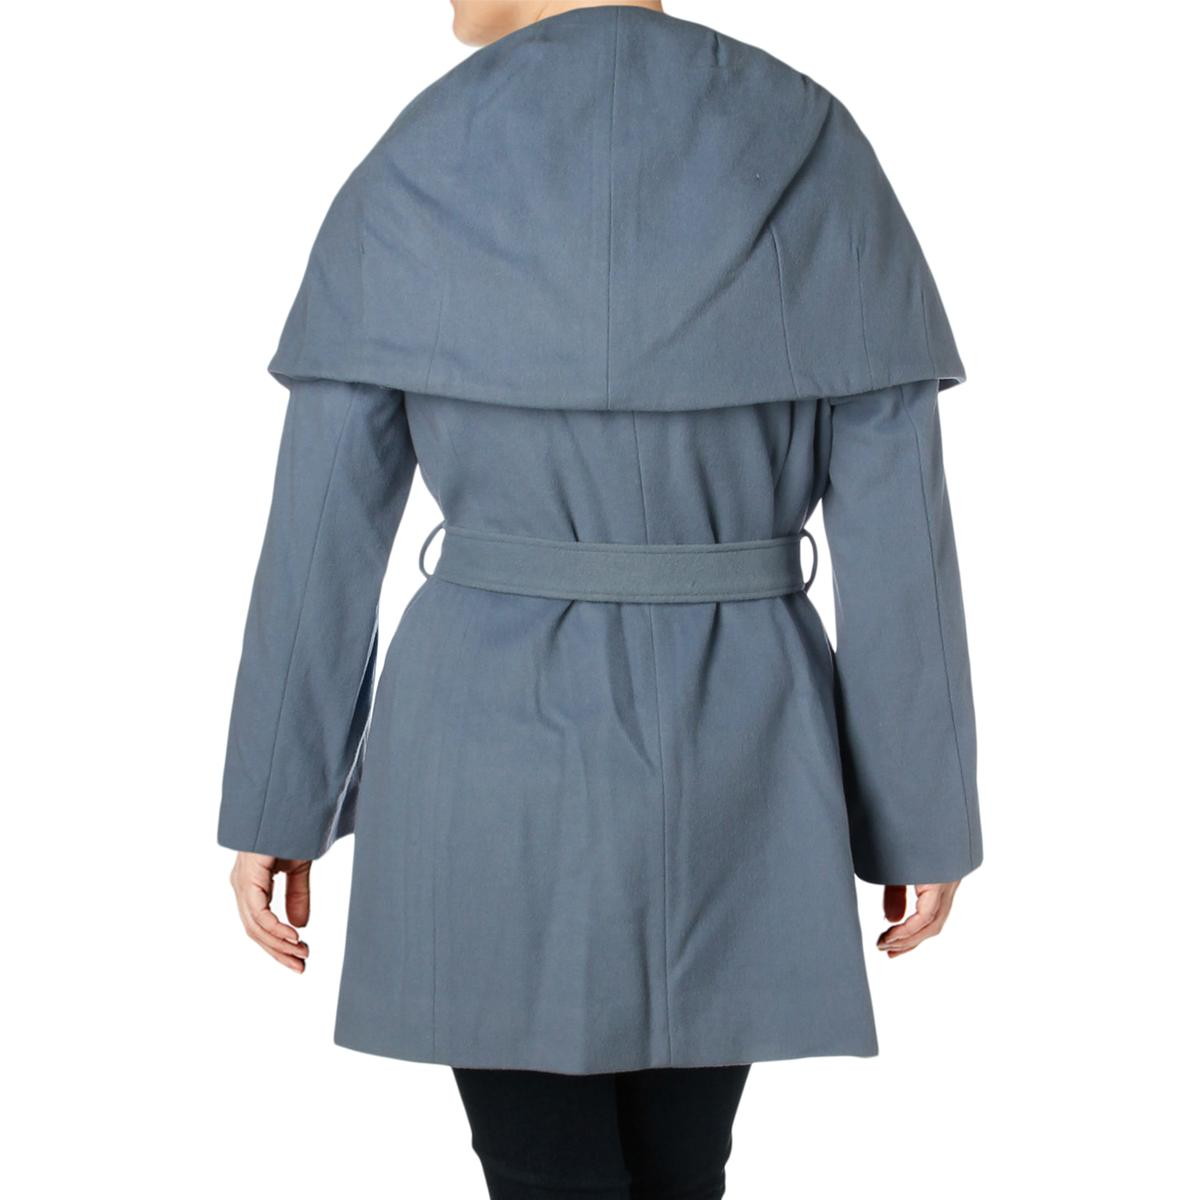 Tahari-Marla-Women-s-Plus-Size-Oversized-Collar-Warm-Wool-Blend-Wrap-Coat thumbnail 6